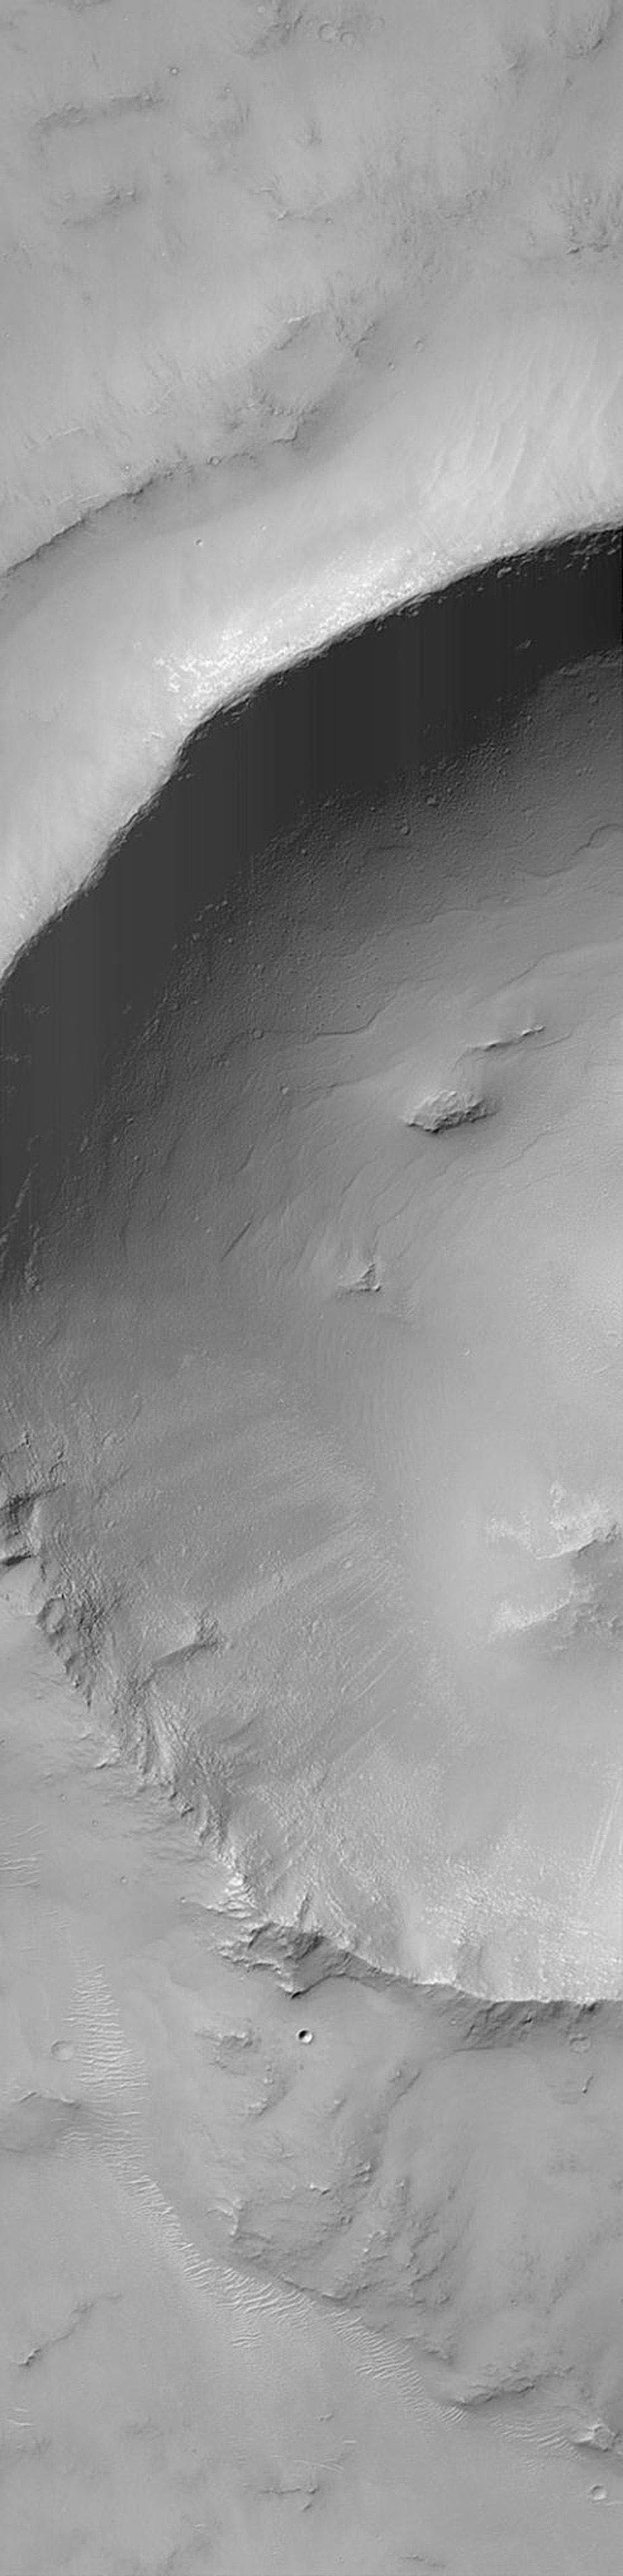 NASA's Mars Global Surveyor shows a crater located in south-central Syria Planum on Mars. This crater was formed by the impact and explosion of a meteorite at some time in the martian past.